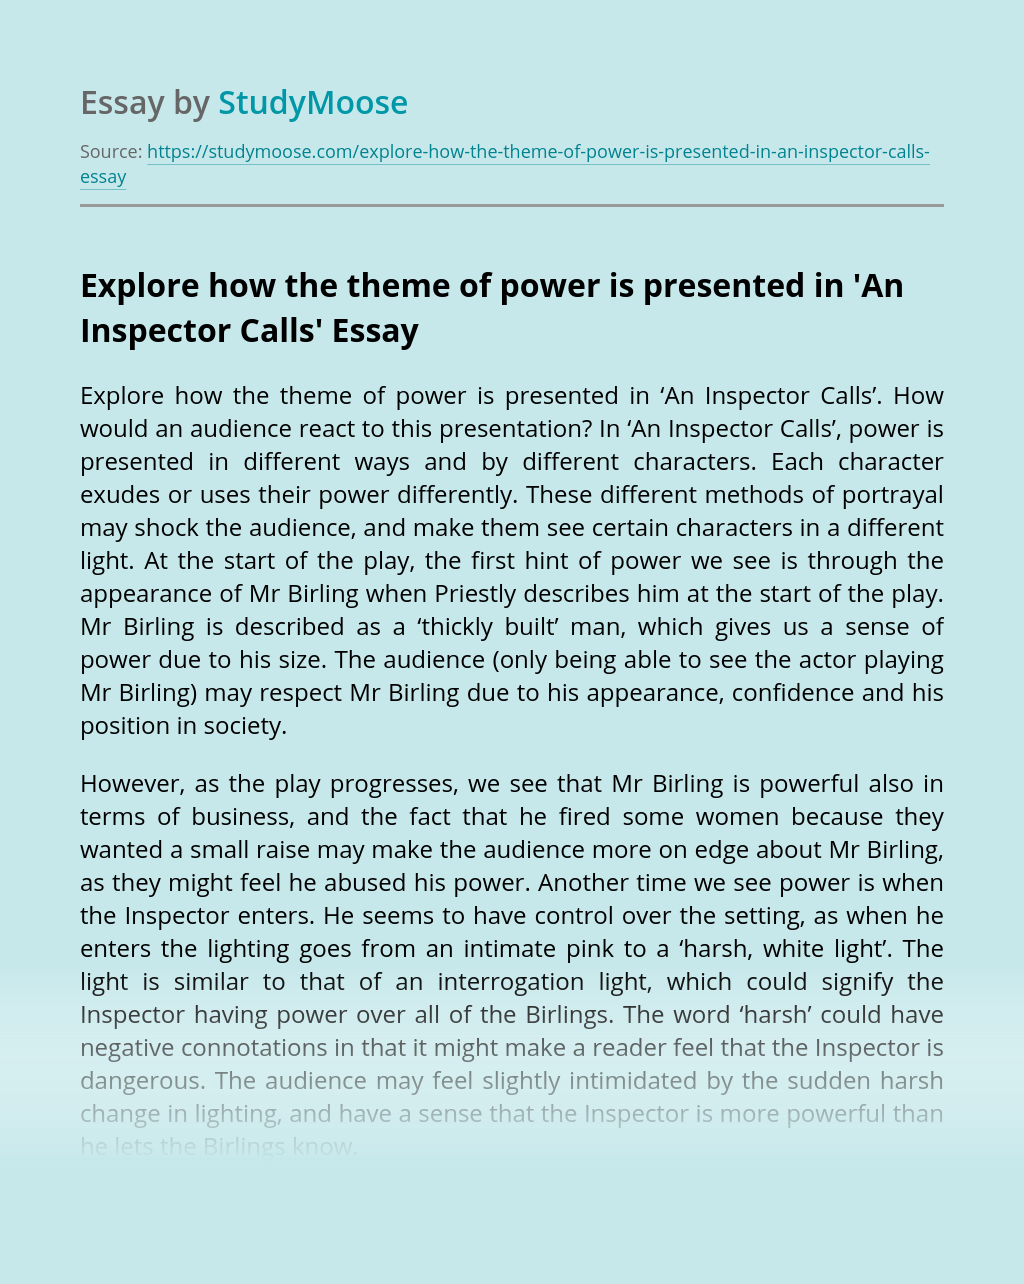 Explore how the theme of power is presented in 'An Inspector Calls'